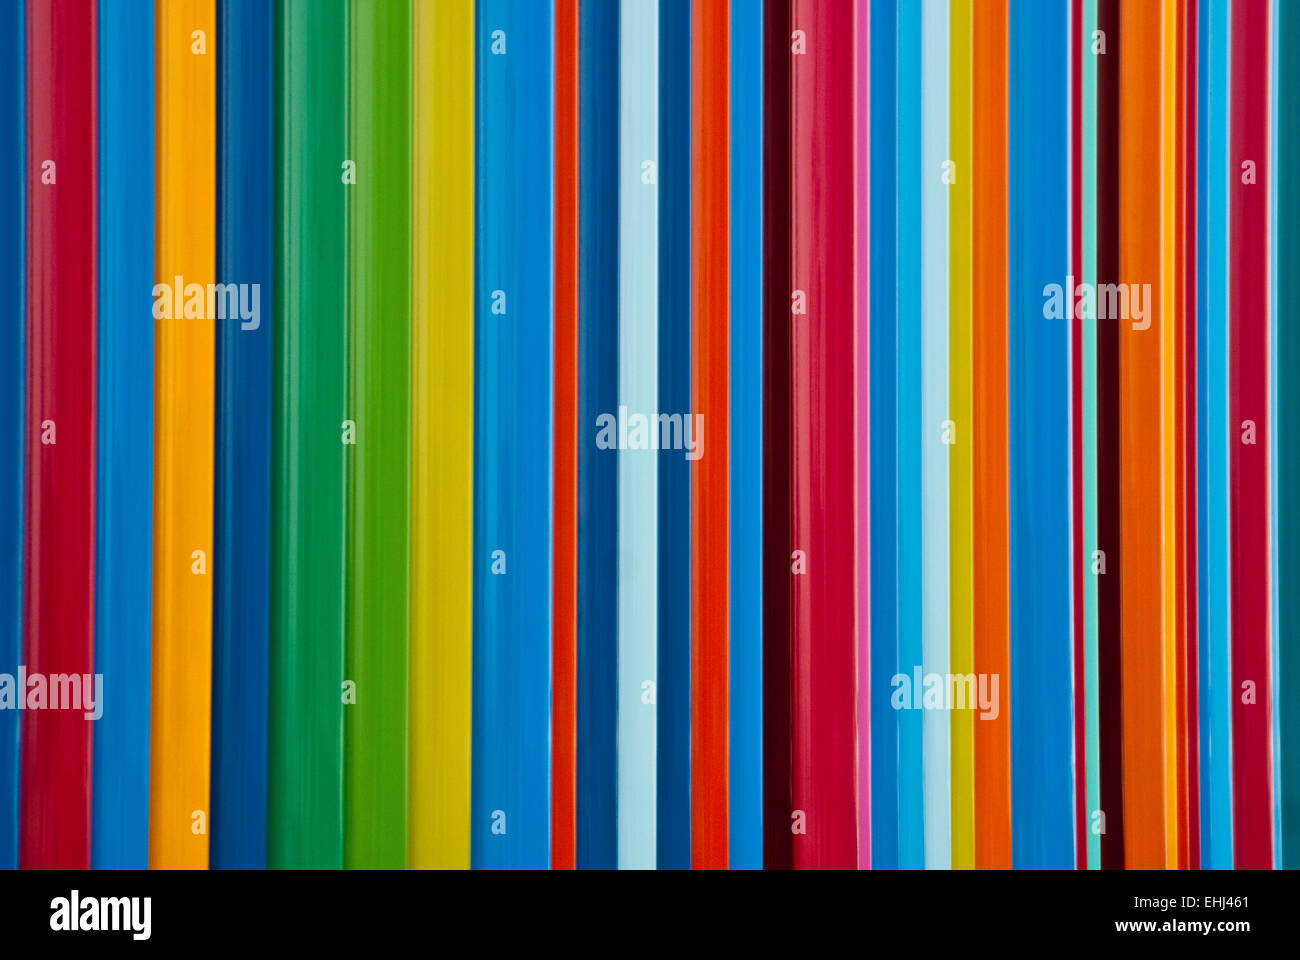 Lines of full spectrum primary colors - Stock Image